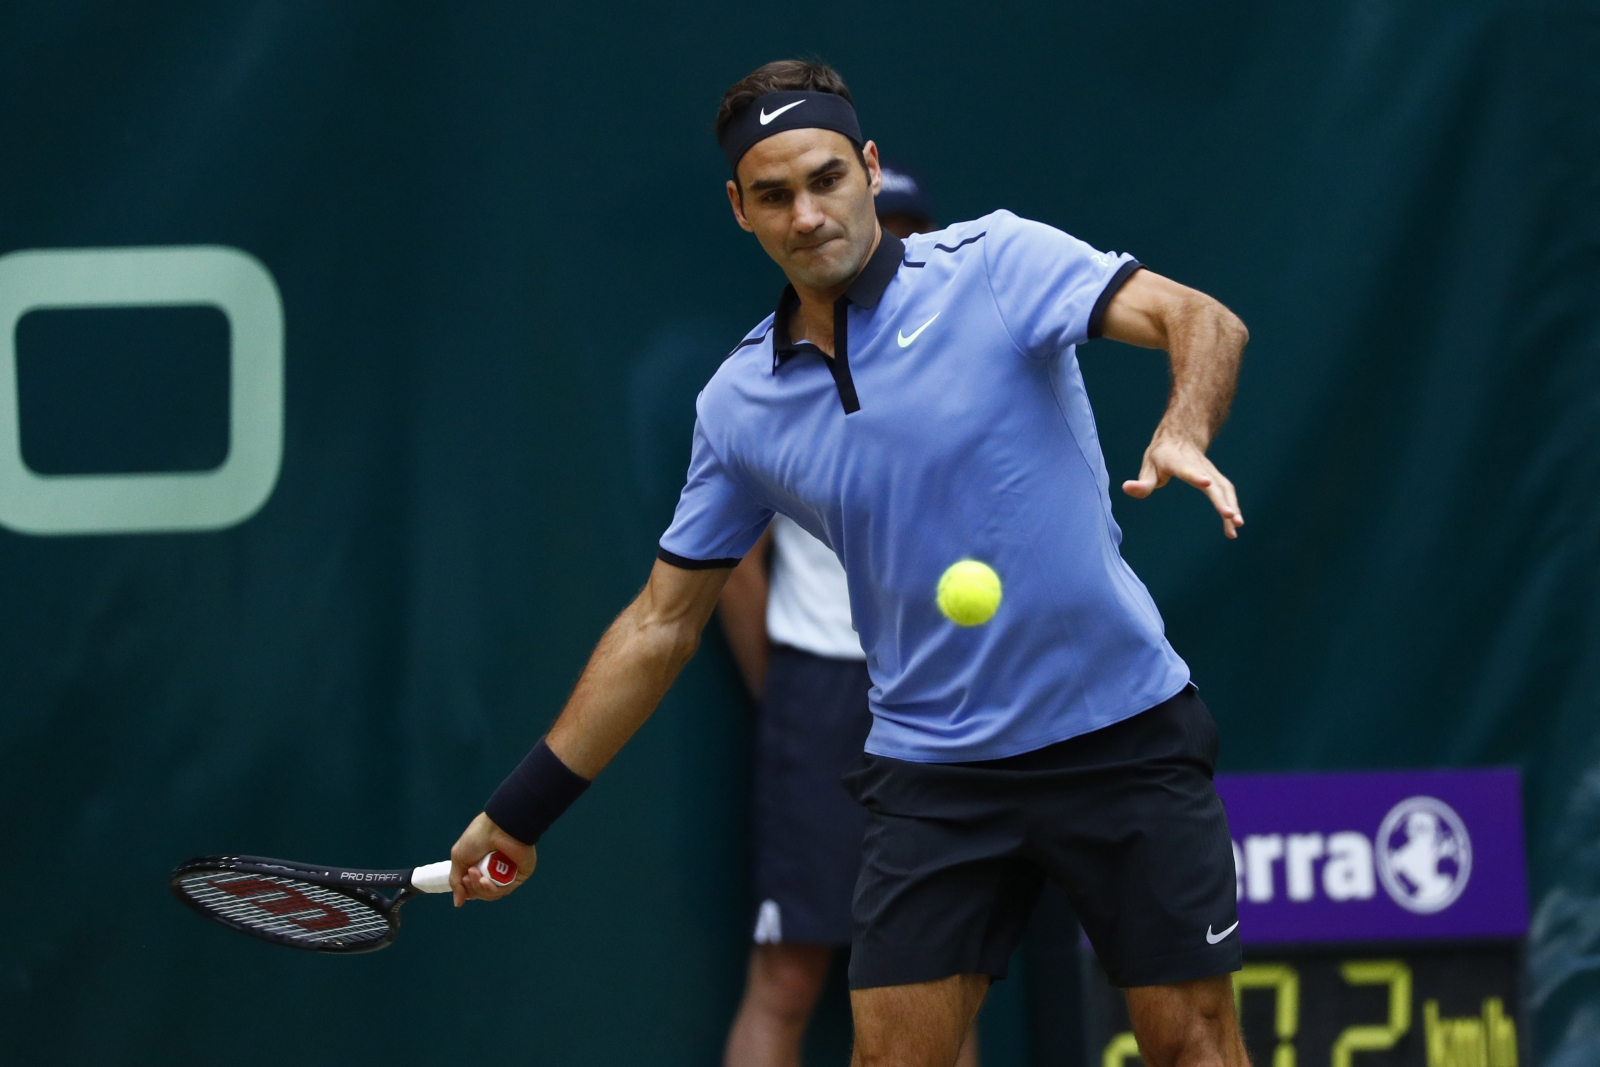 Roger Federer leapfrogs Rafael Nadal but insists seedings will not